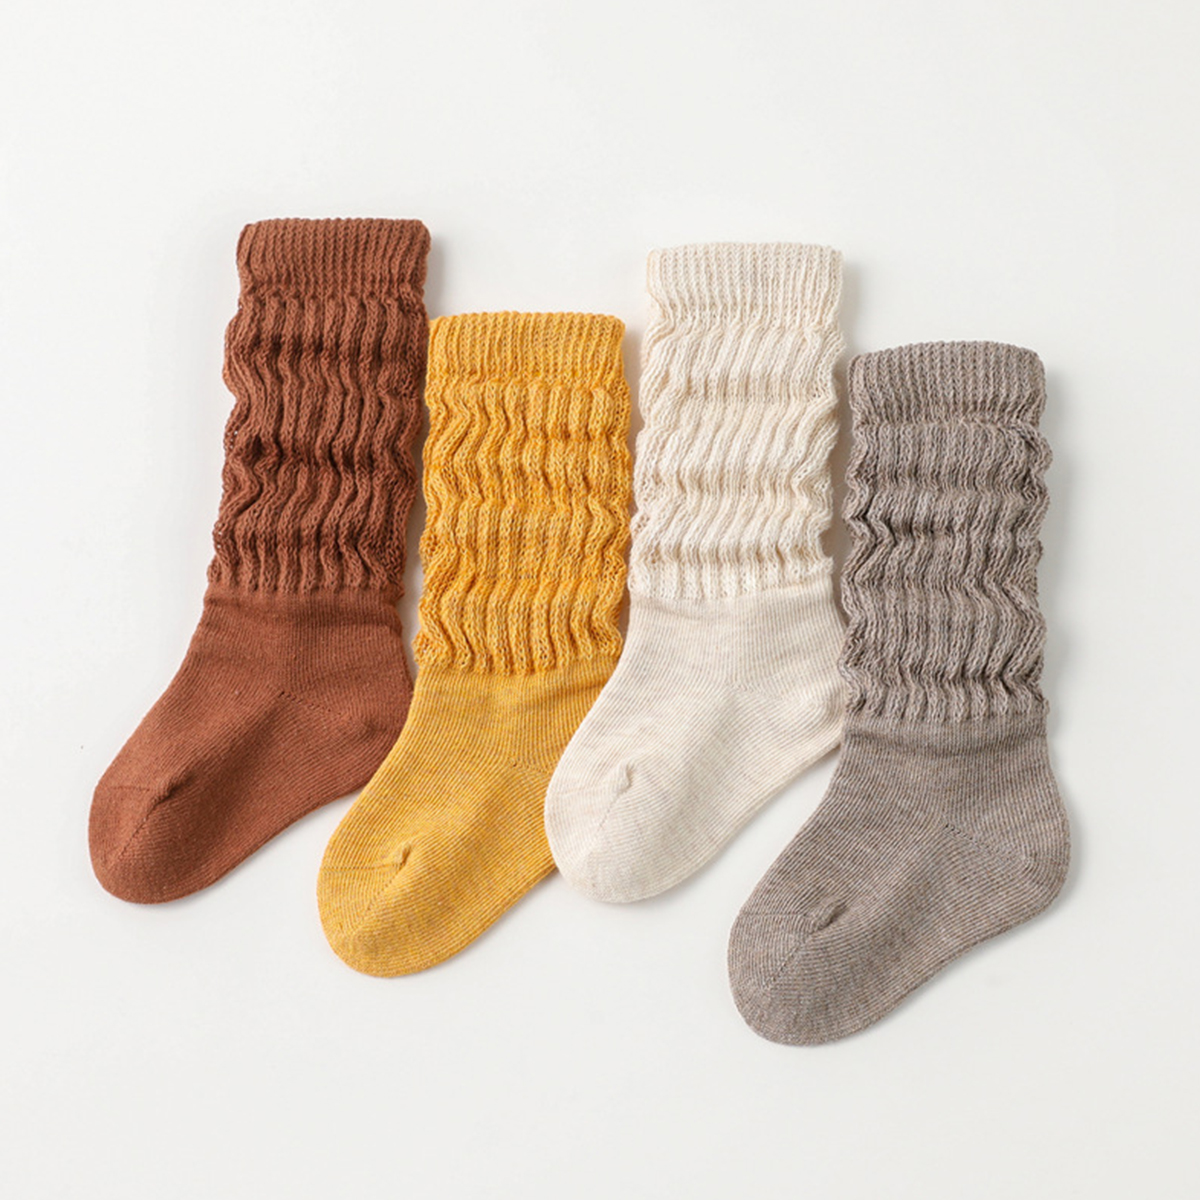 4-pack Baby / Toddler Casual Solid Antiskid Stocking Set